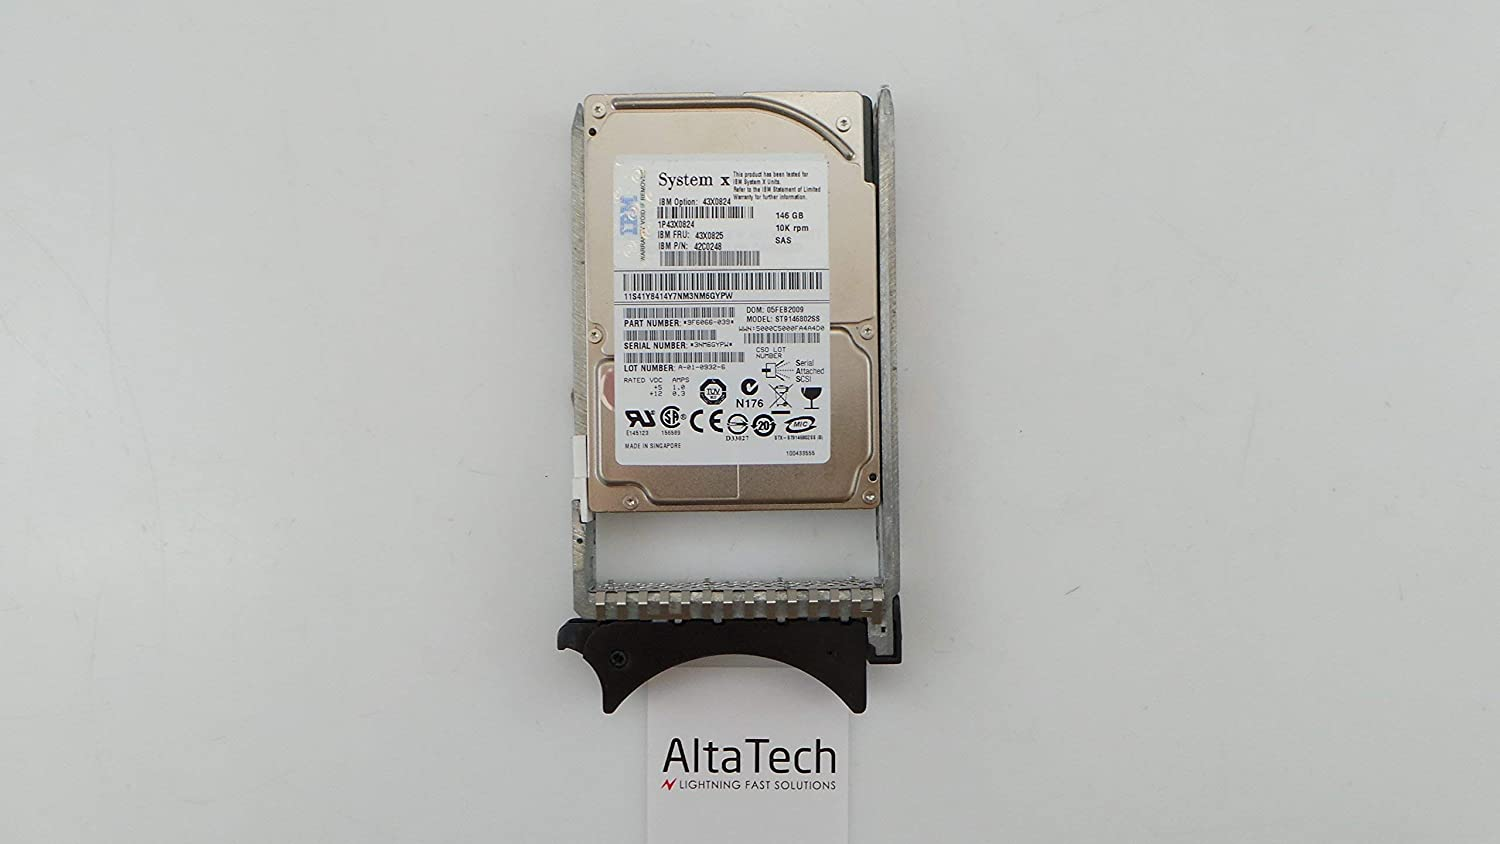 Renewed IBM 43X0824 146GB 10000 RPM 2.5 Inch Hot-Swap Serial Attached SCSI SAS Hard Drive with Tray.